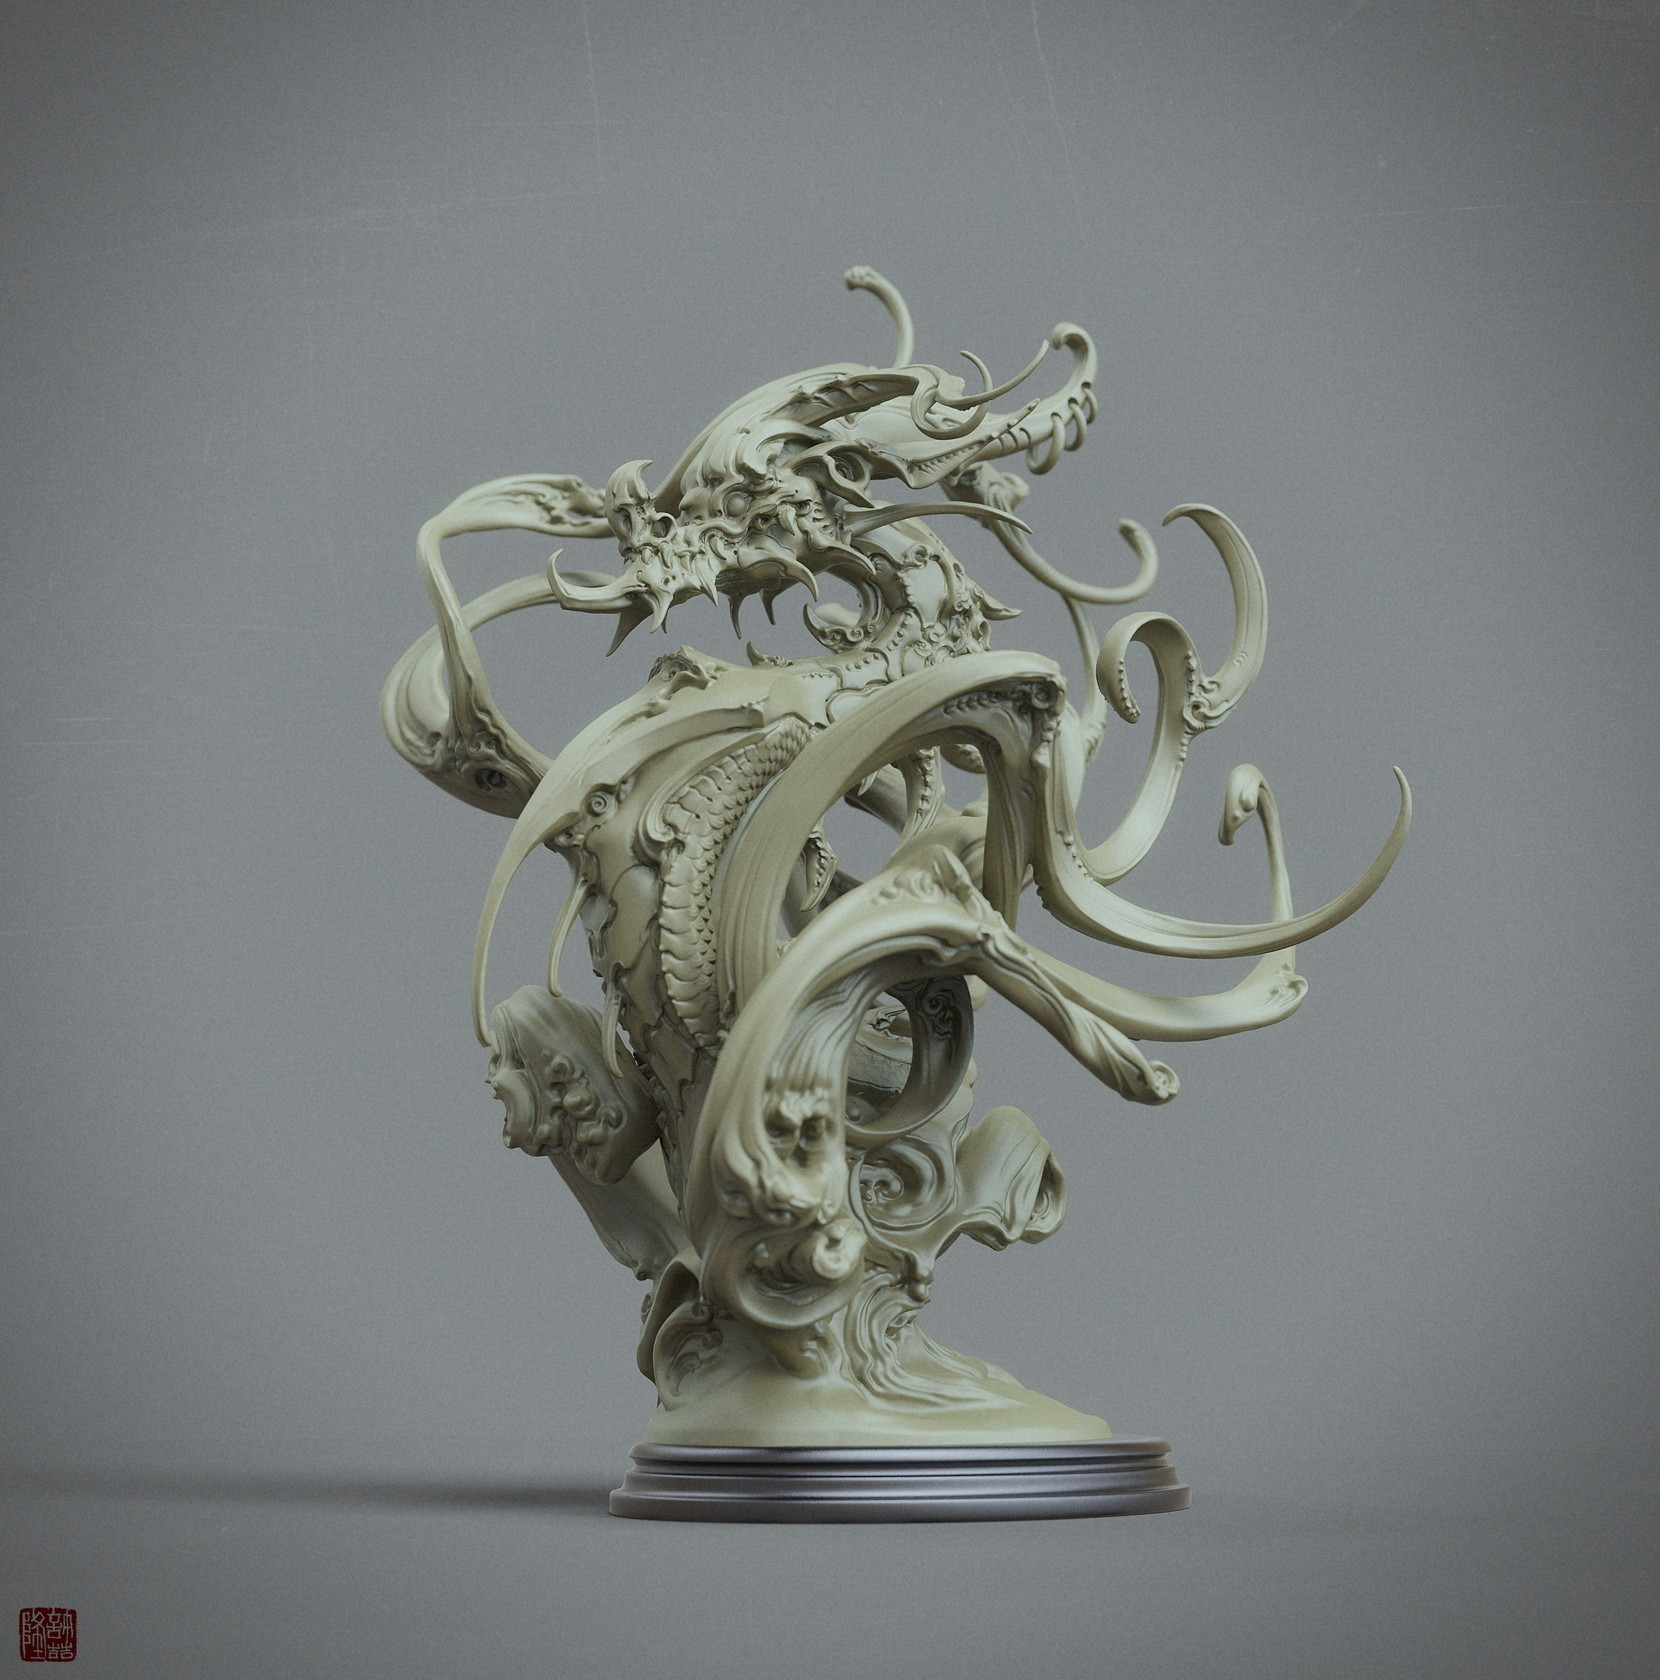 Zhelong xu keyshot render05 websize